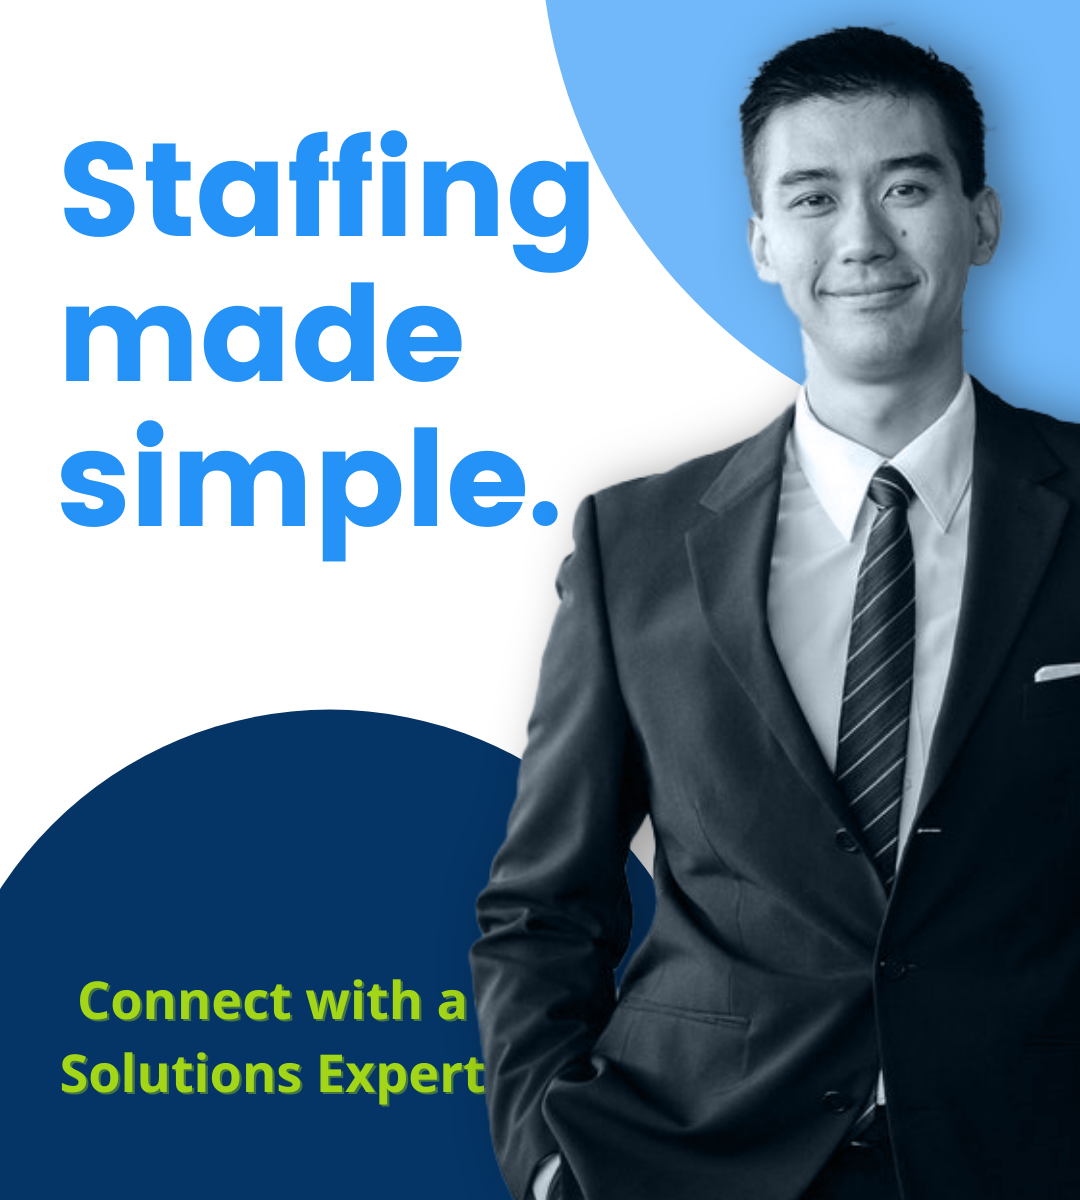 Bridge Staffing agency support. Find the right staffing solution with a Bridge TA expert